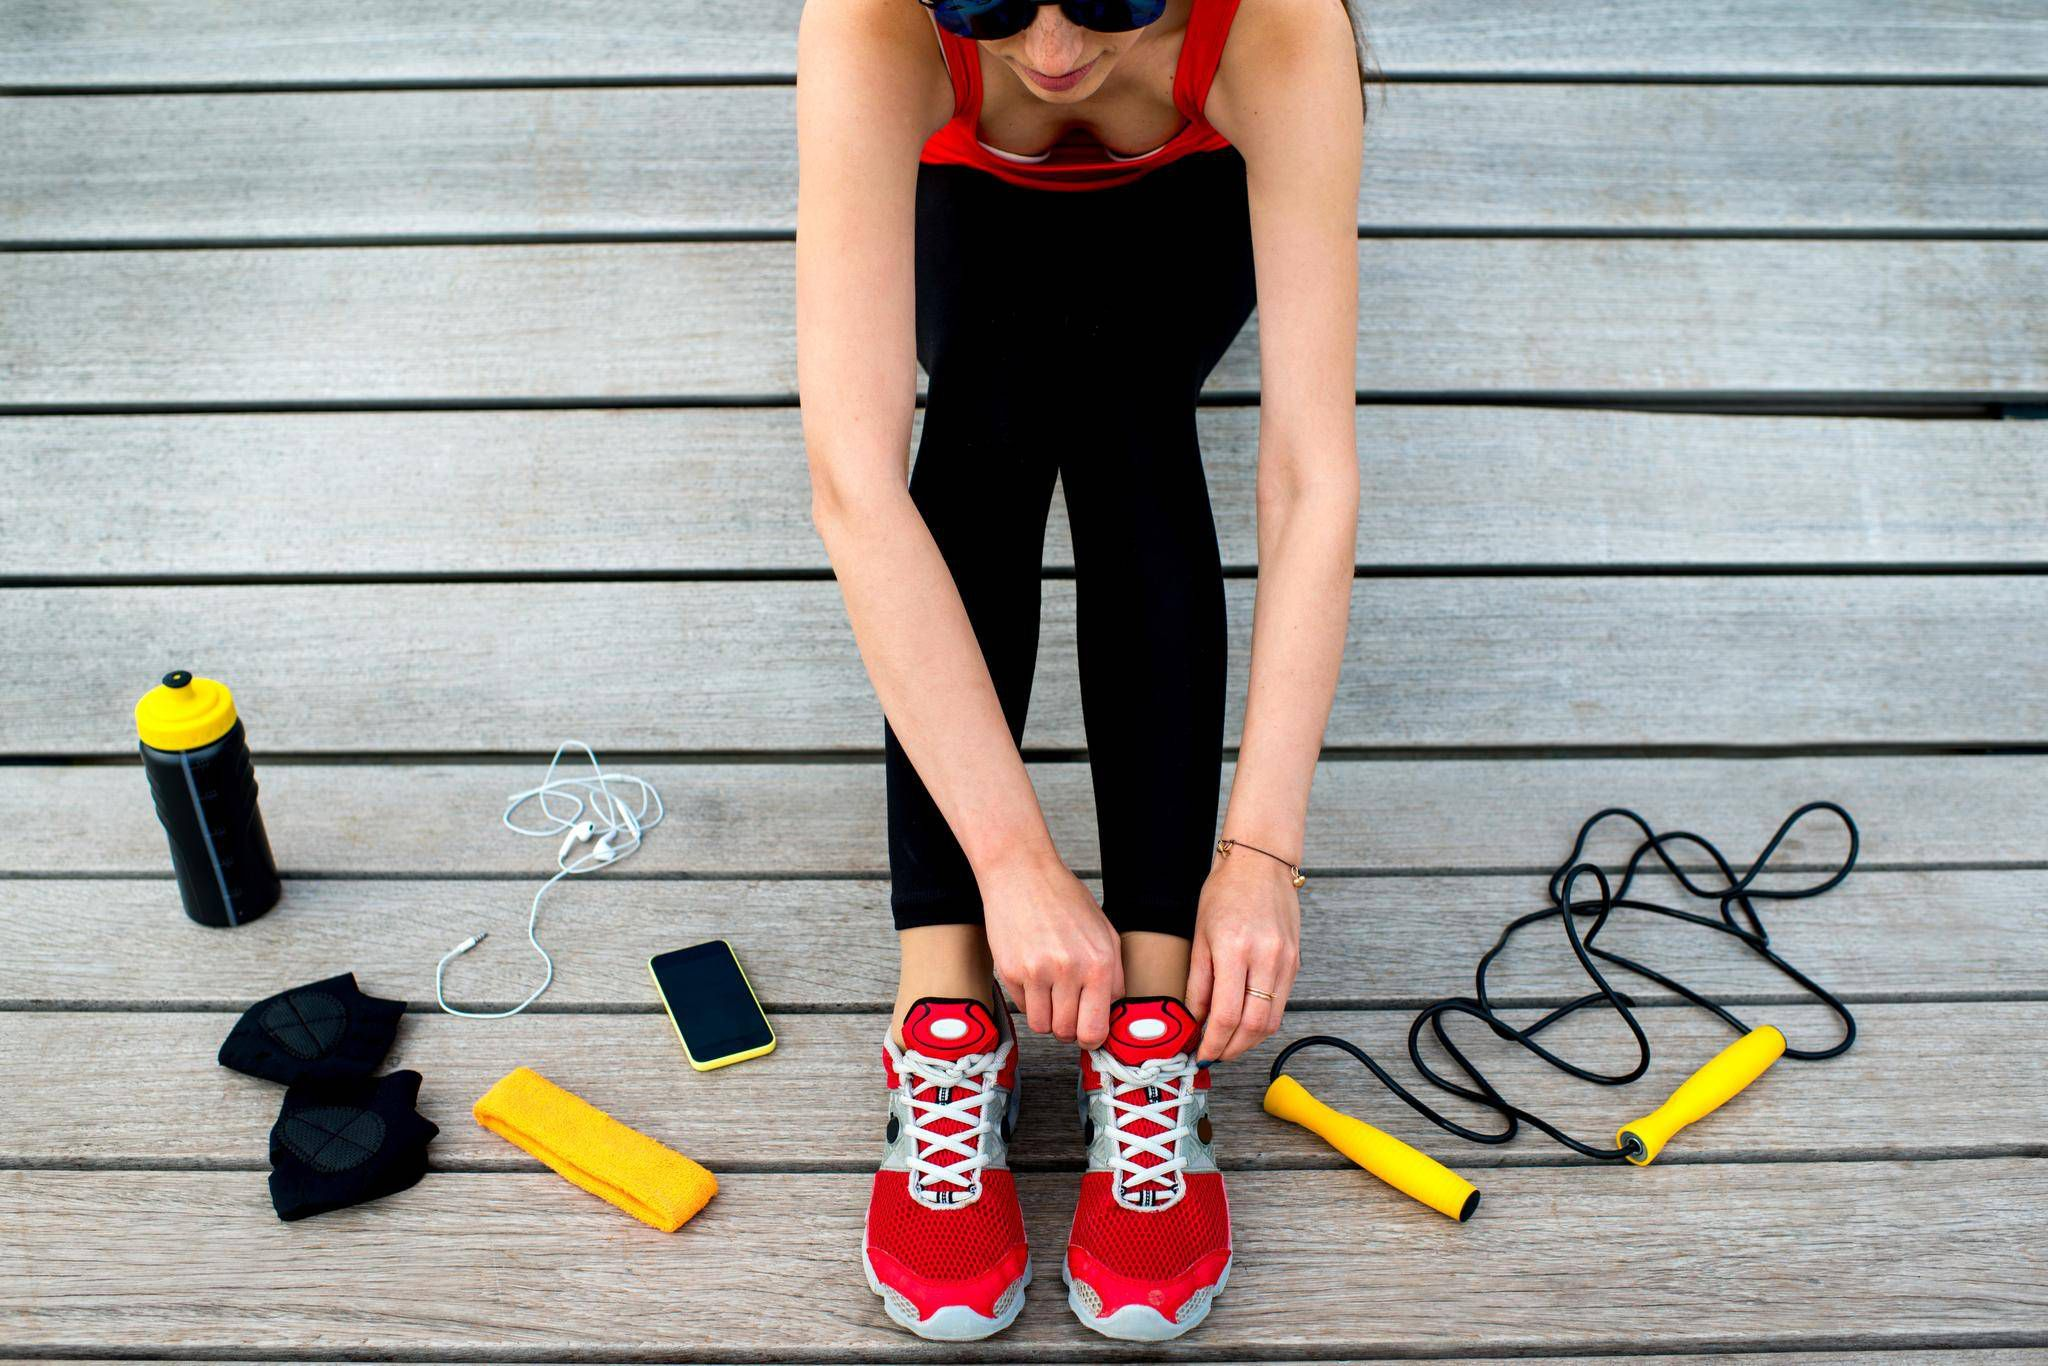 Synchronizing music to exercise: How the right tempo means a